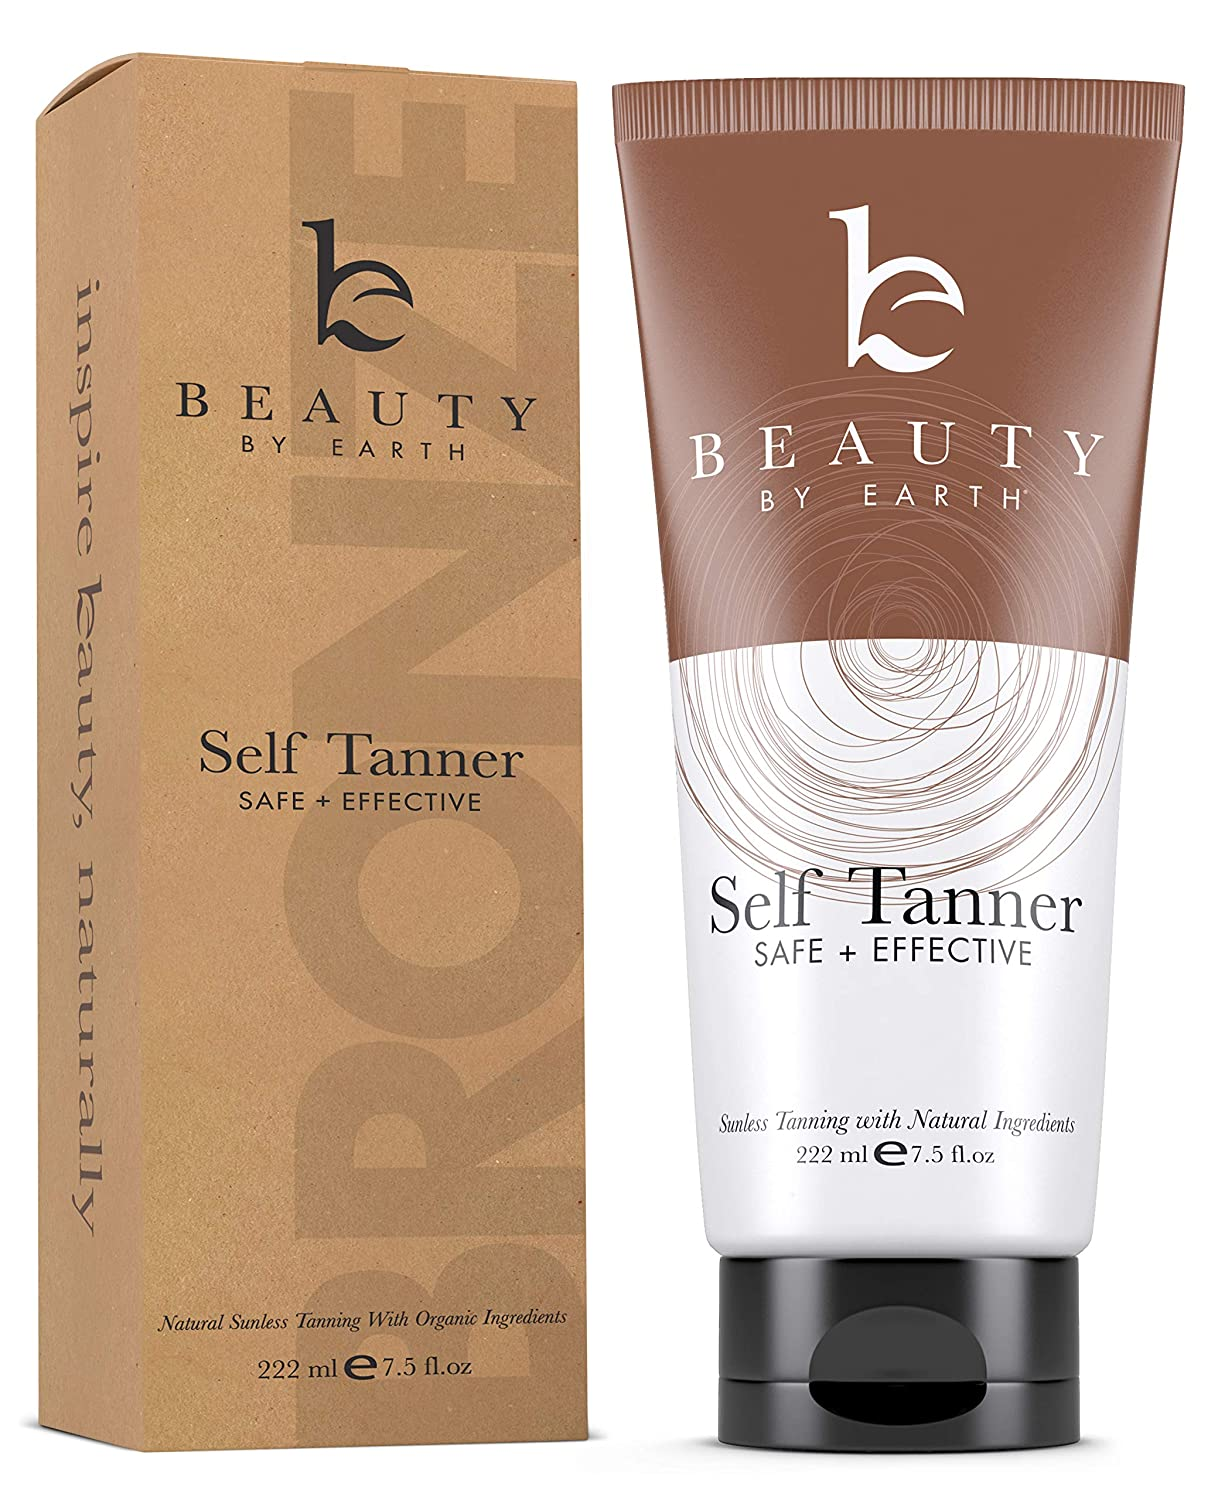 Self Tanner with Organic & Natural Ingredients, Tanning Lotion, Sunless Tanning Lotion for Flawless Darker Bronzer Skin, Self Tanning Lotion – Self Tanners Best Sellers, Fake Tan